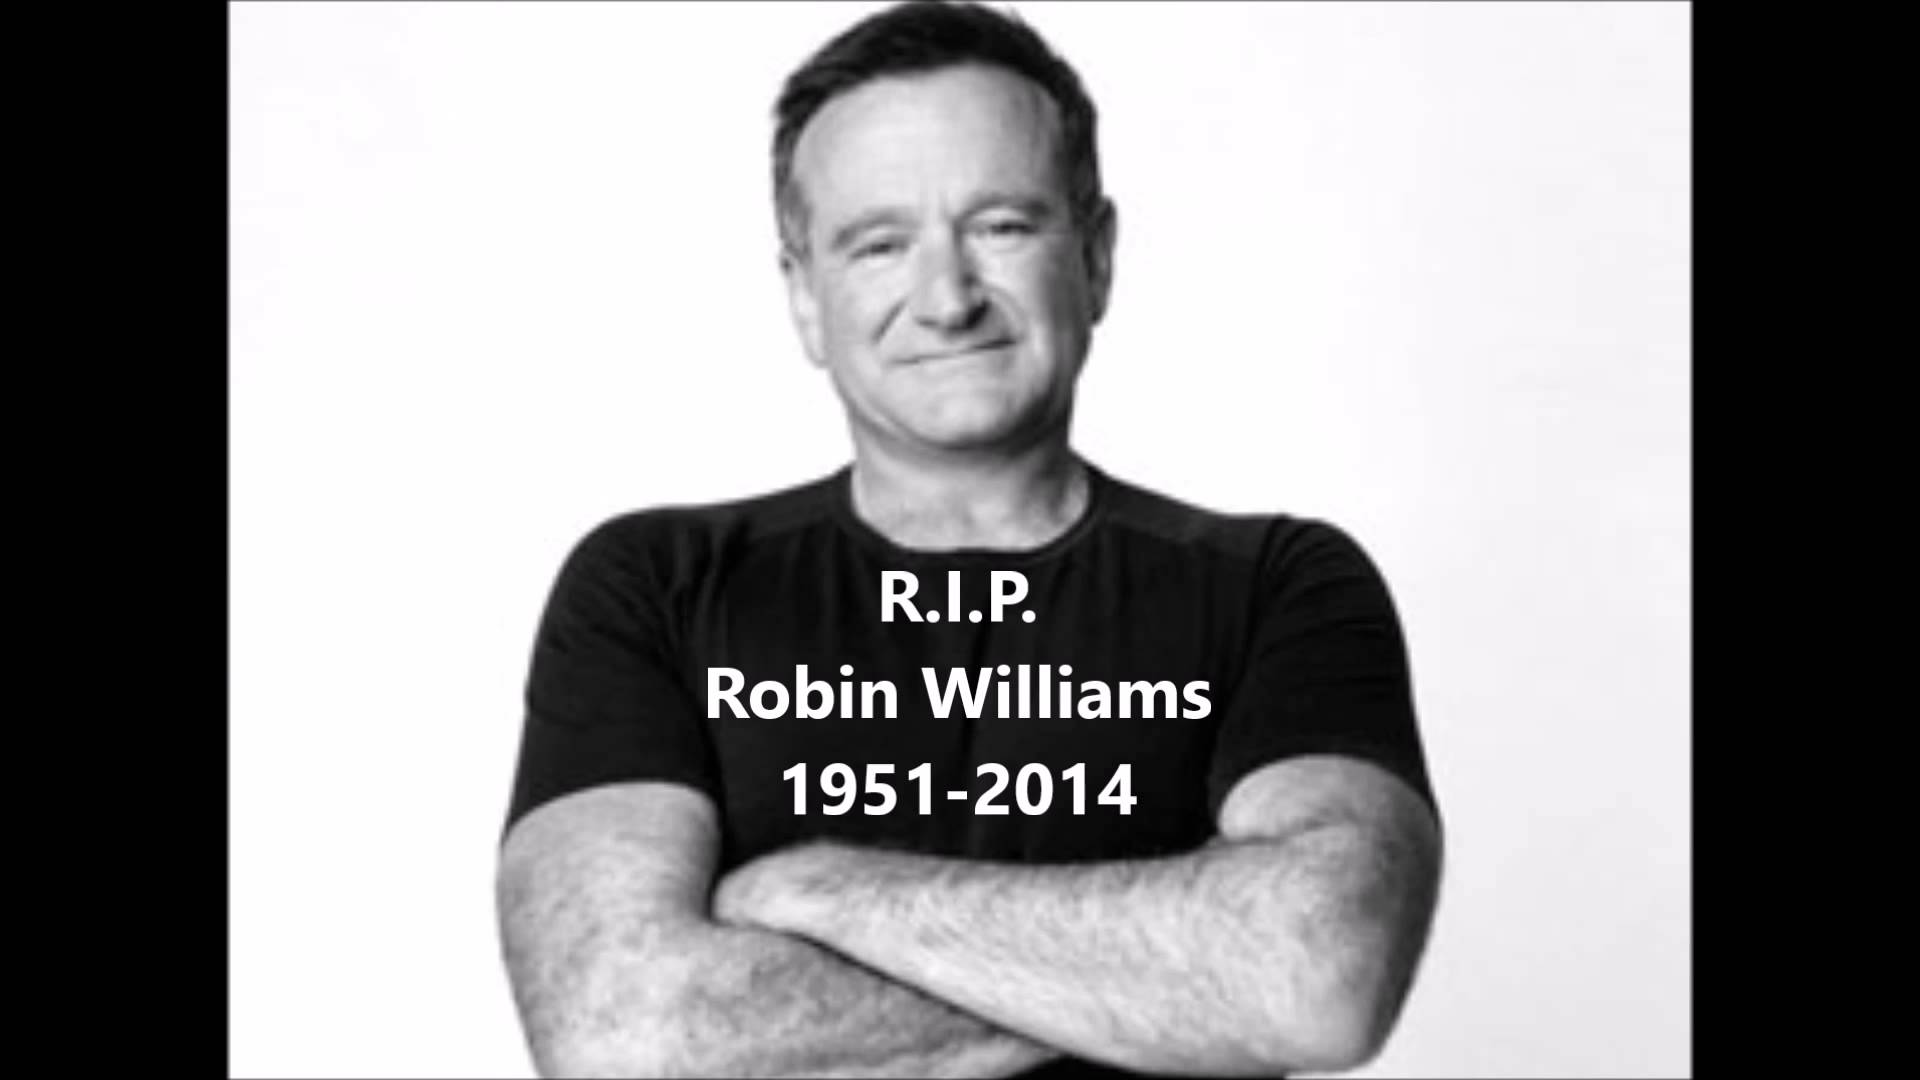 Robin Williams' suicide